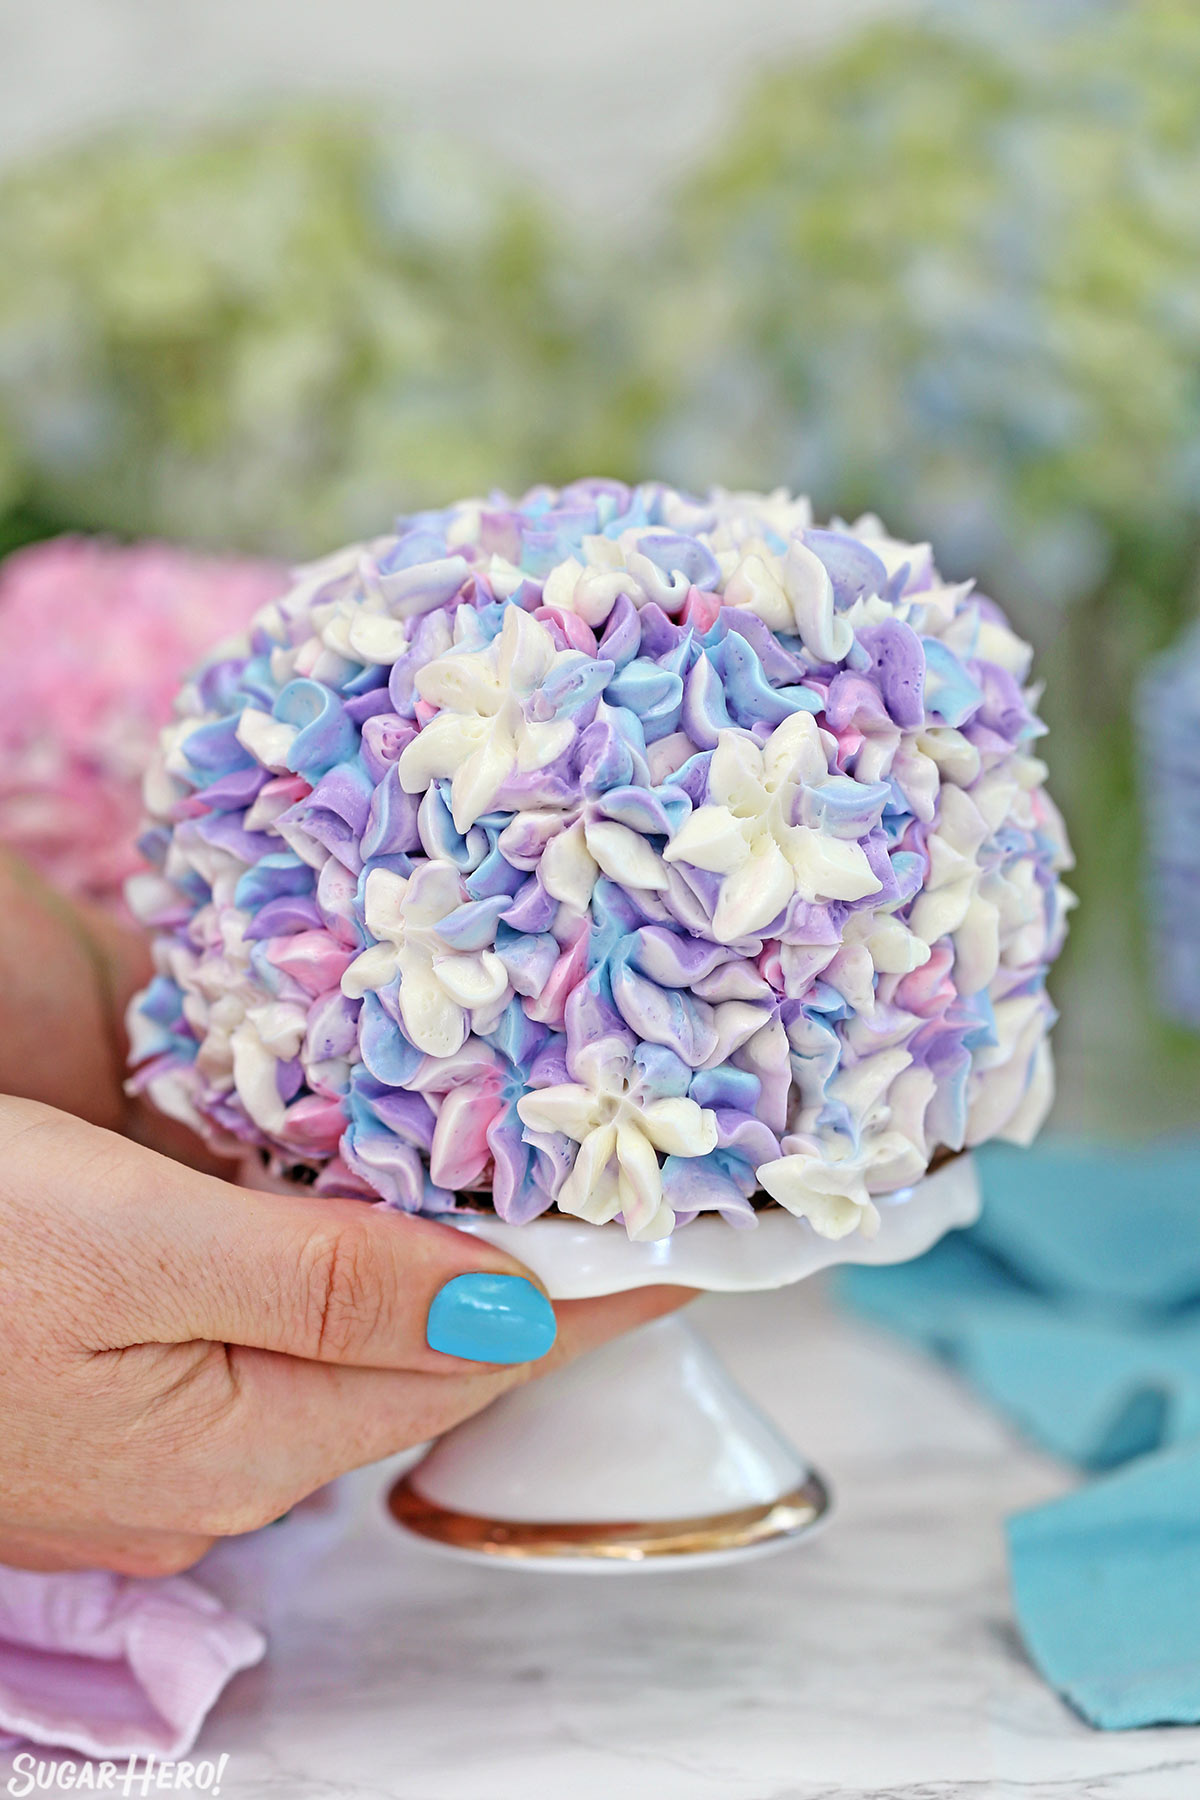 Hydrangea cakes sugarhero hydrangea cakes gorgeous mini cakes that look like hydrangeas perfect for spring parties or izmirmasajfo